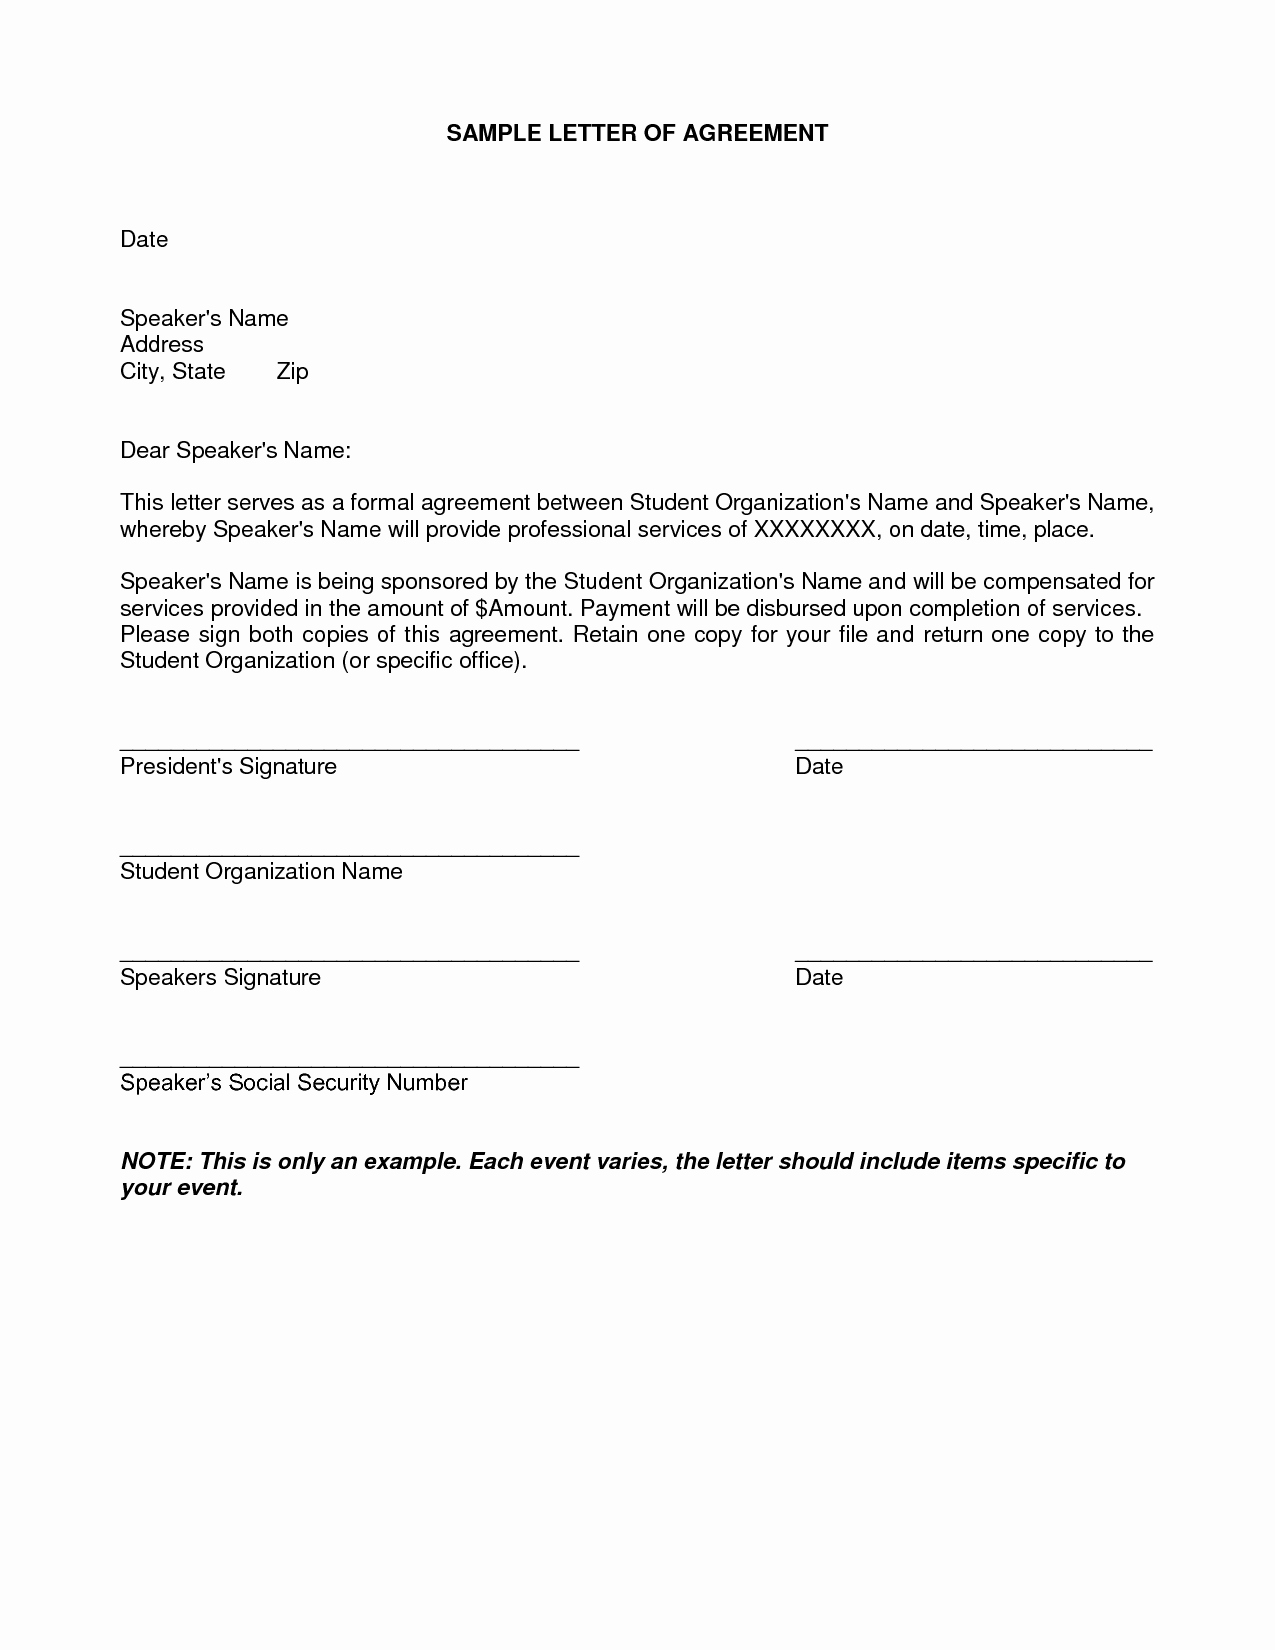 End Of Contract Letter Sample Best Of Letter Agreement Samples Template Seeabruzzo Letter